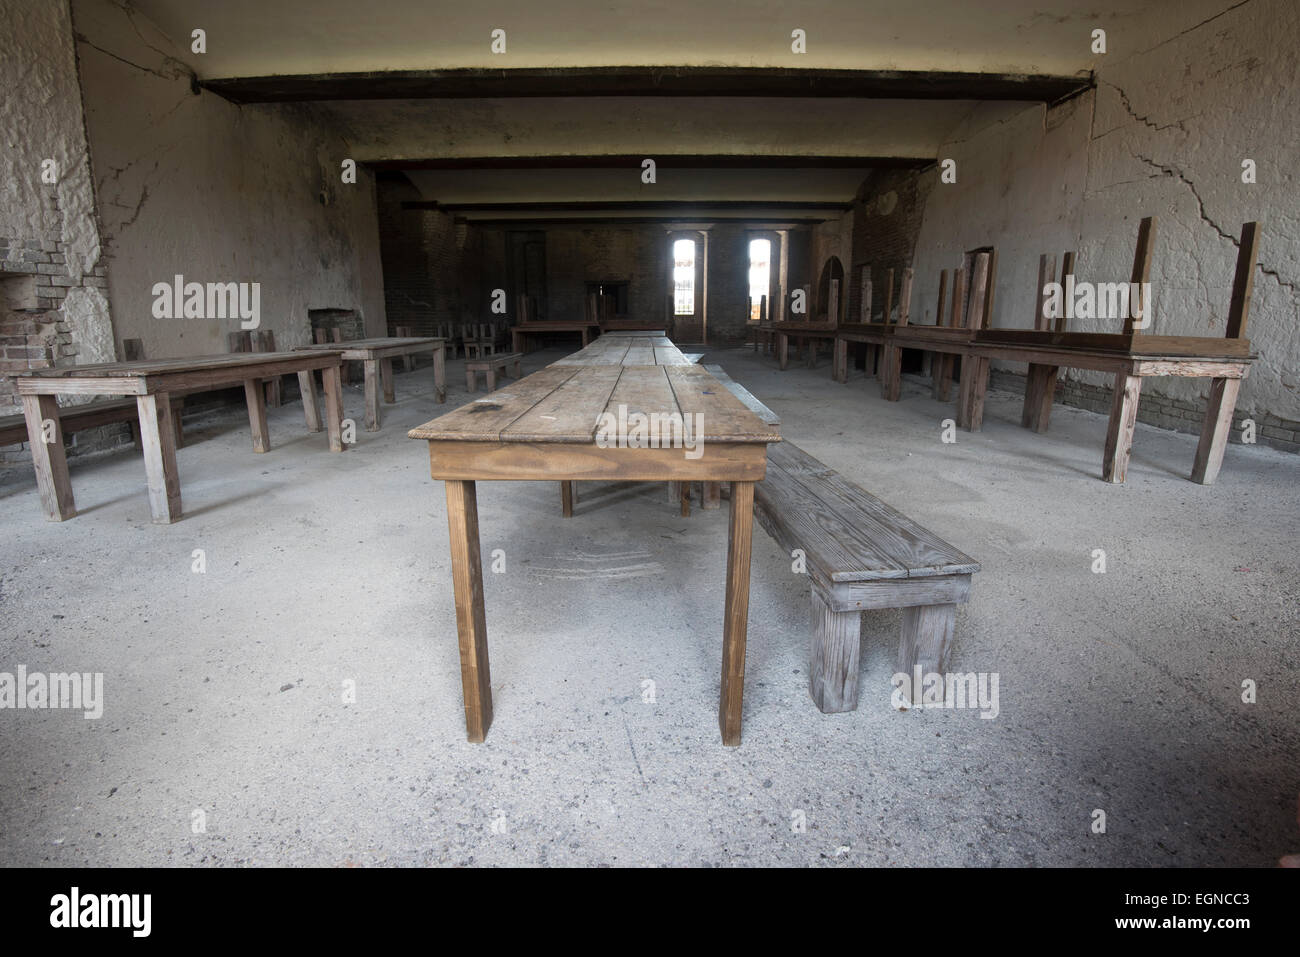 The mess hall with antique wooden tables at Fort Zachary Taylor State Historical Park - Stock Image